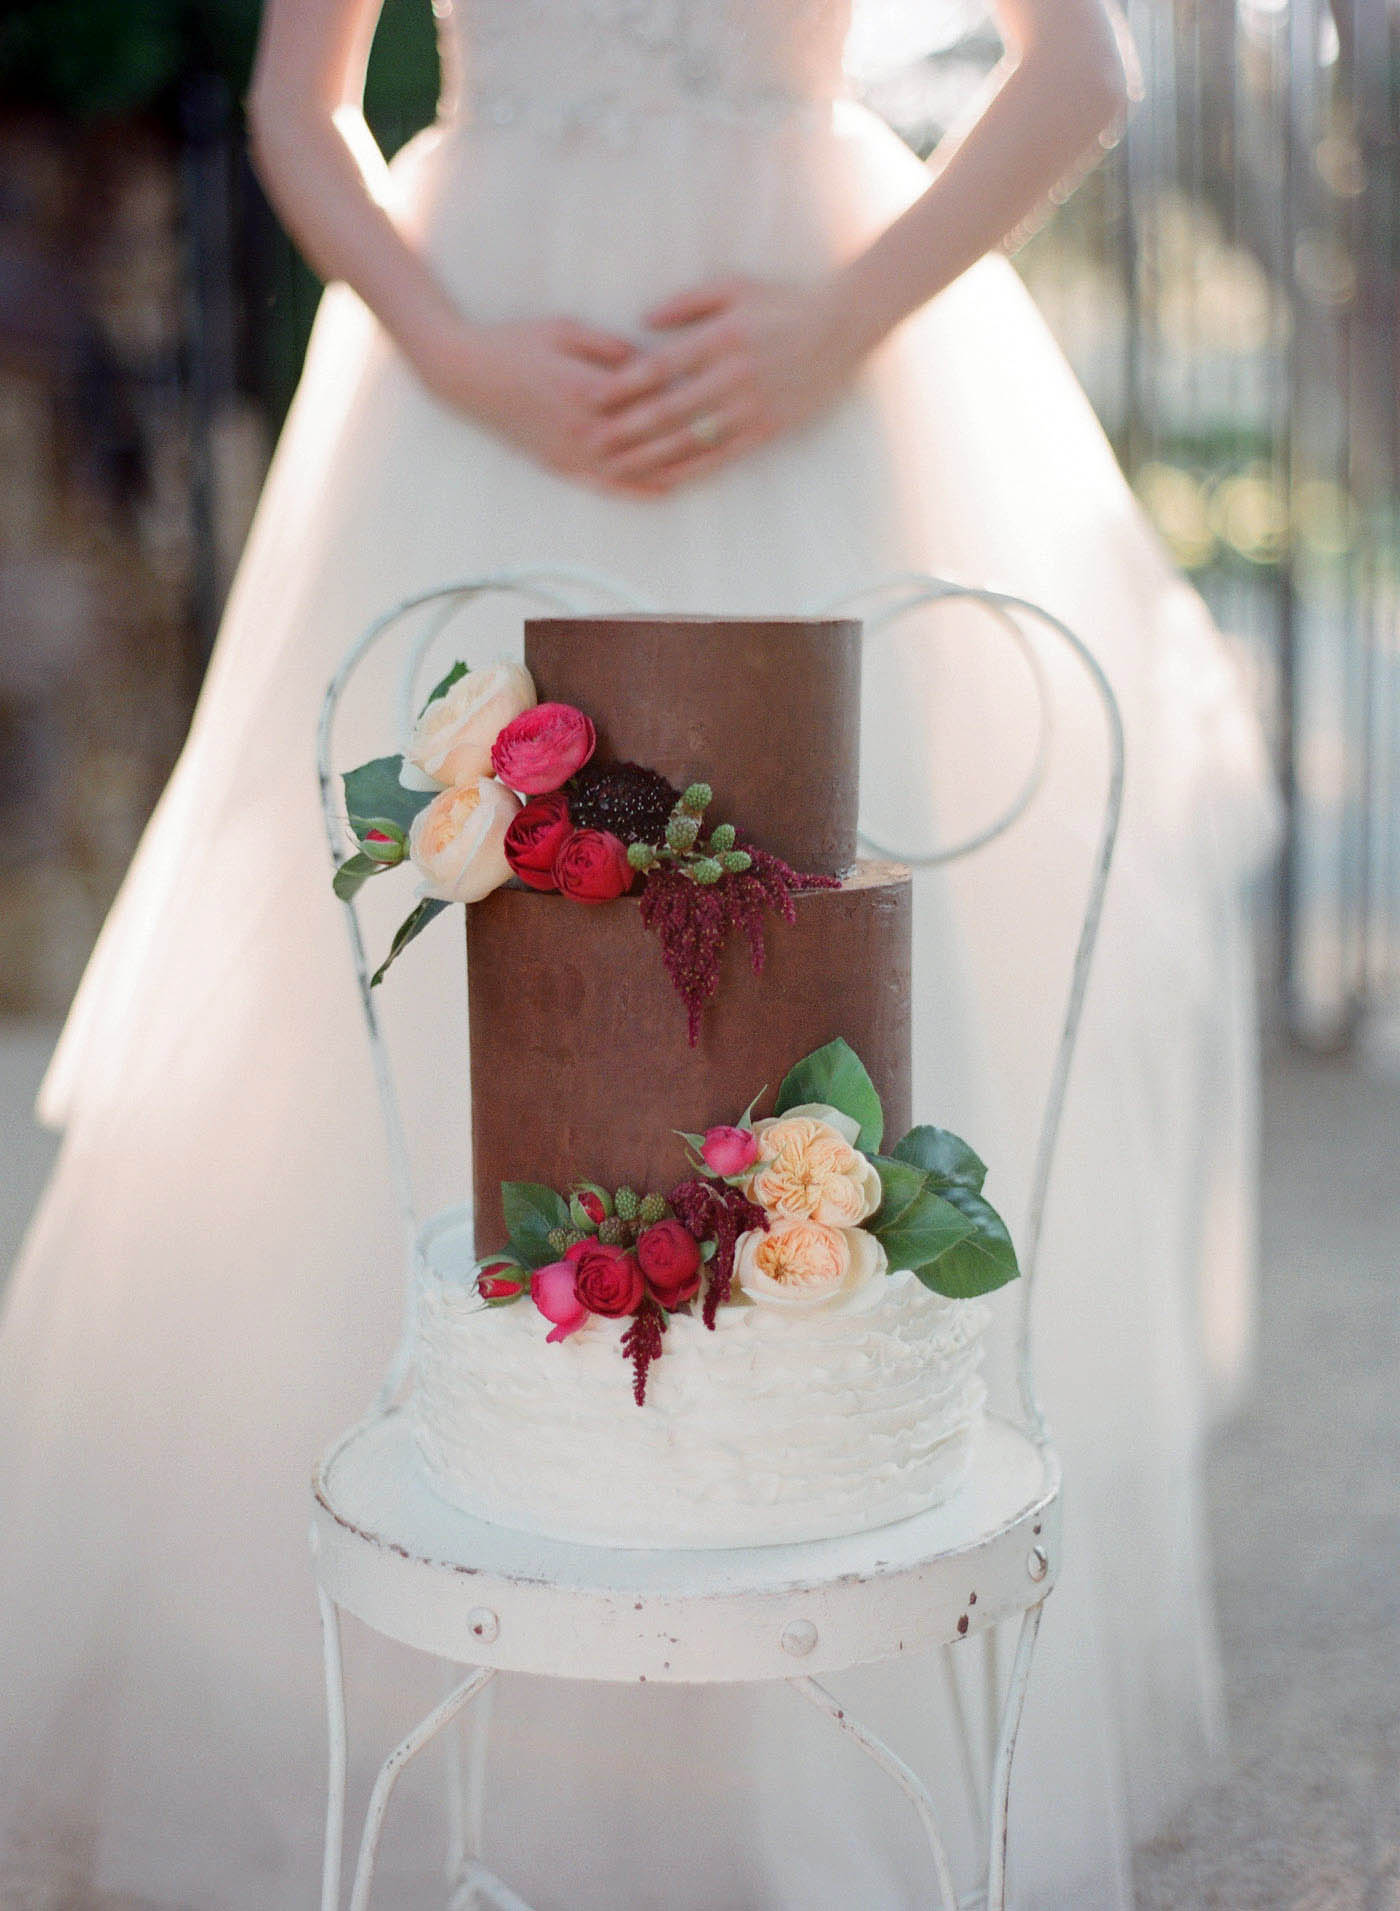 Floral wedding cake decoration